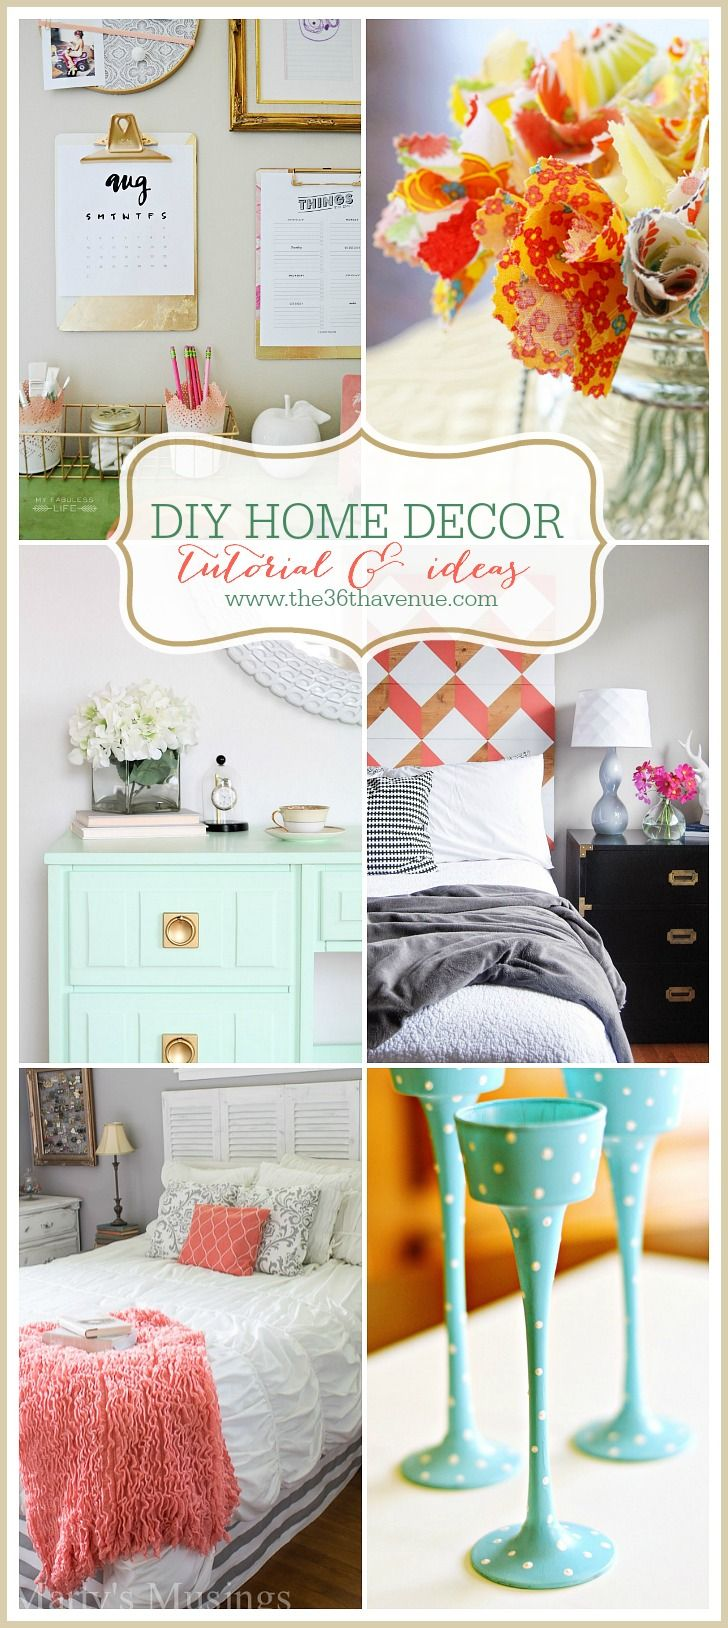 Home Decor DIY Projects | Tutorials, Hardware and Craft